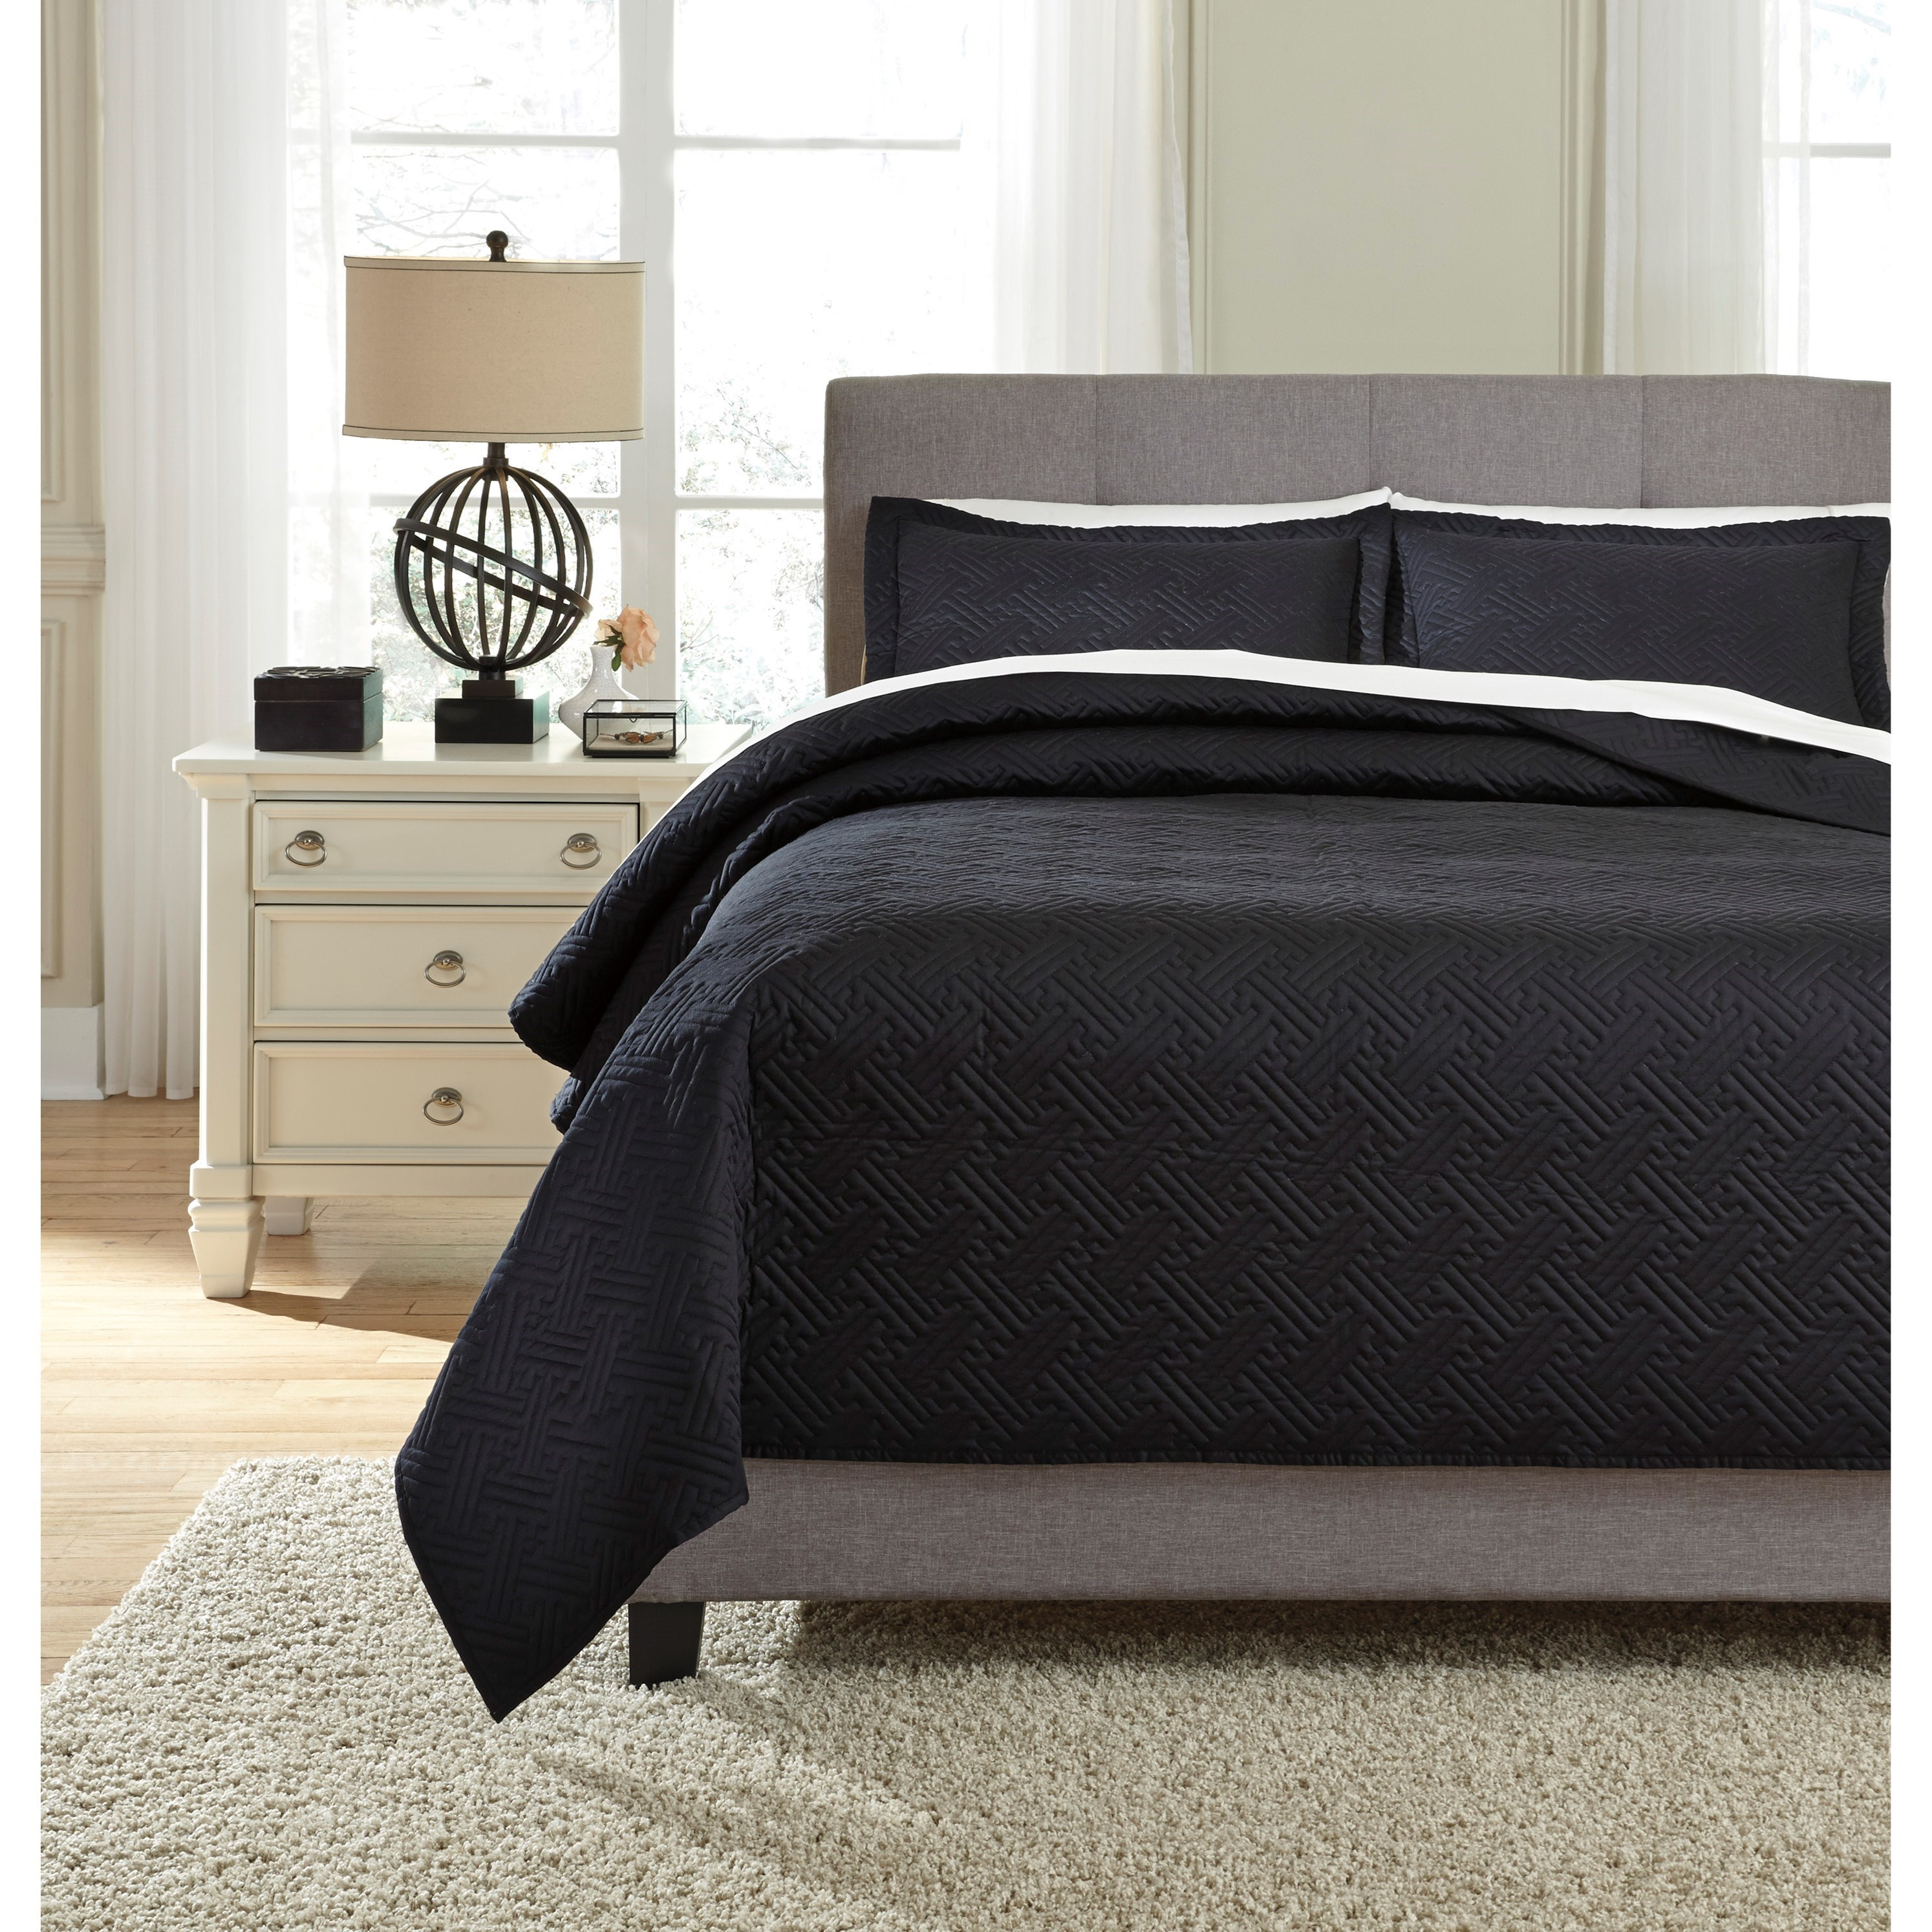 Bedding Sets Queen Aldis Black Coverlet Set by Signature Design by Ashley at Lapeer Furniture & Mattress Center